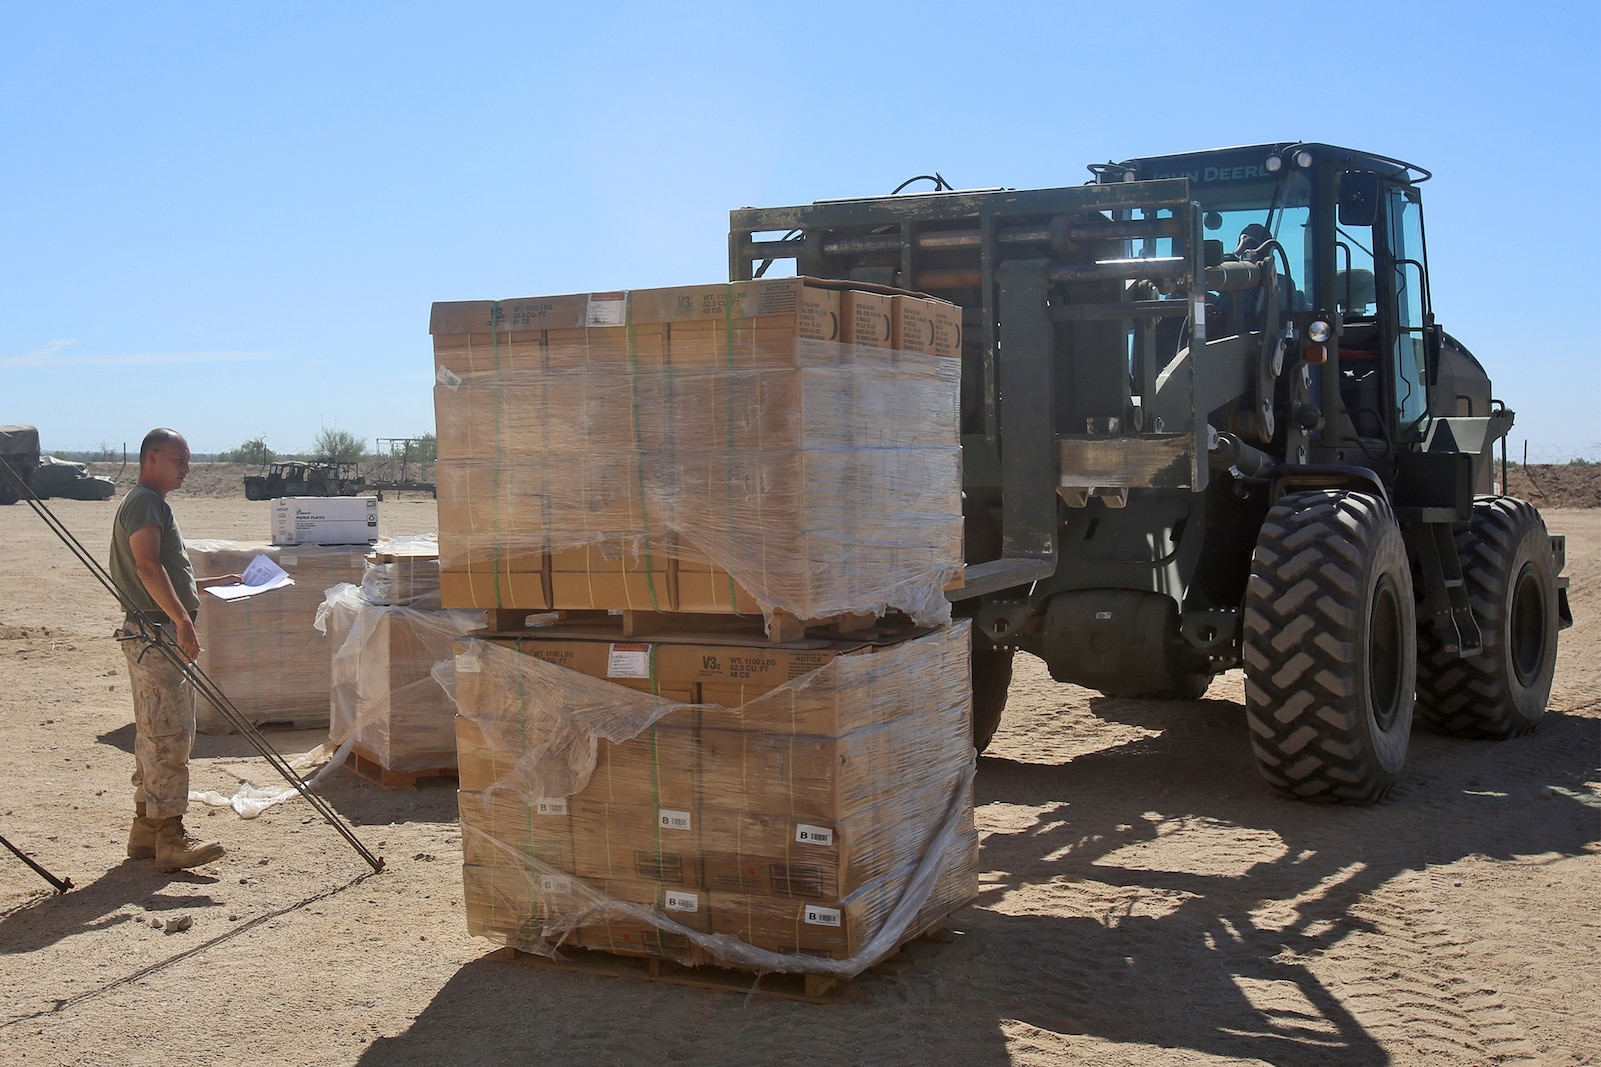 Marines with 1st Supply Battalion, Combat Logistics Regiment 15, 1st Marine Logistics Group, receive supplies from a Combat Logistics Company 16 convoy for distribution to different units during Weapons and Tactics Instructor Course 1-14 in Yuma, Ariz., Oct. 3, 2013. Daily convoys were organized by CLC-16 to provide food, fuel and equipment across Arizona in support of WTI 1-14 and traveled as far as 350 miles for a single resupply operation.